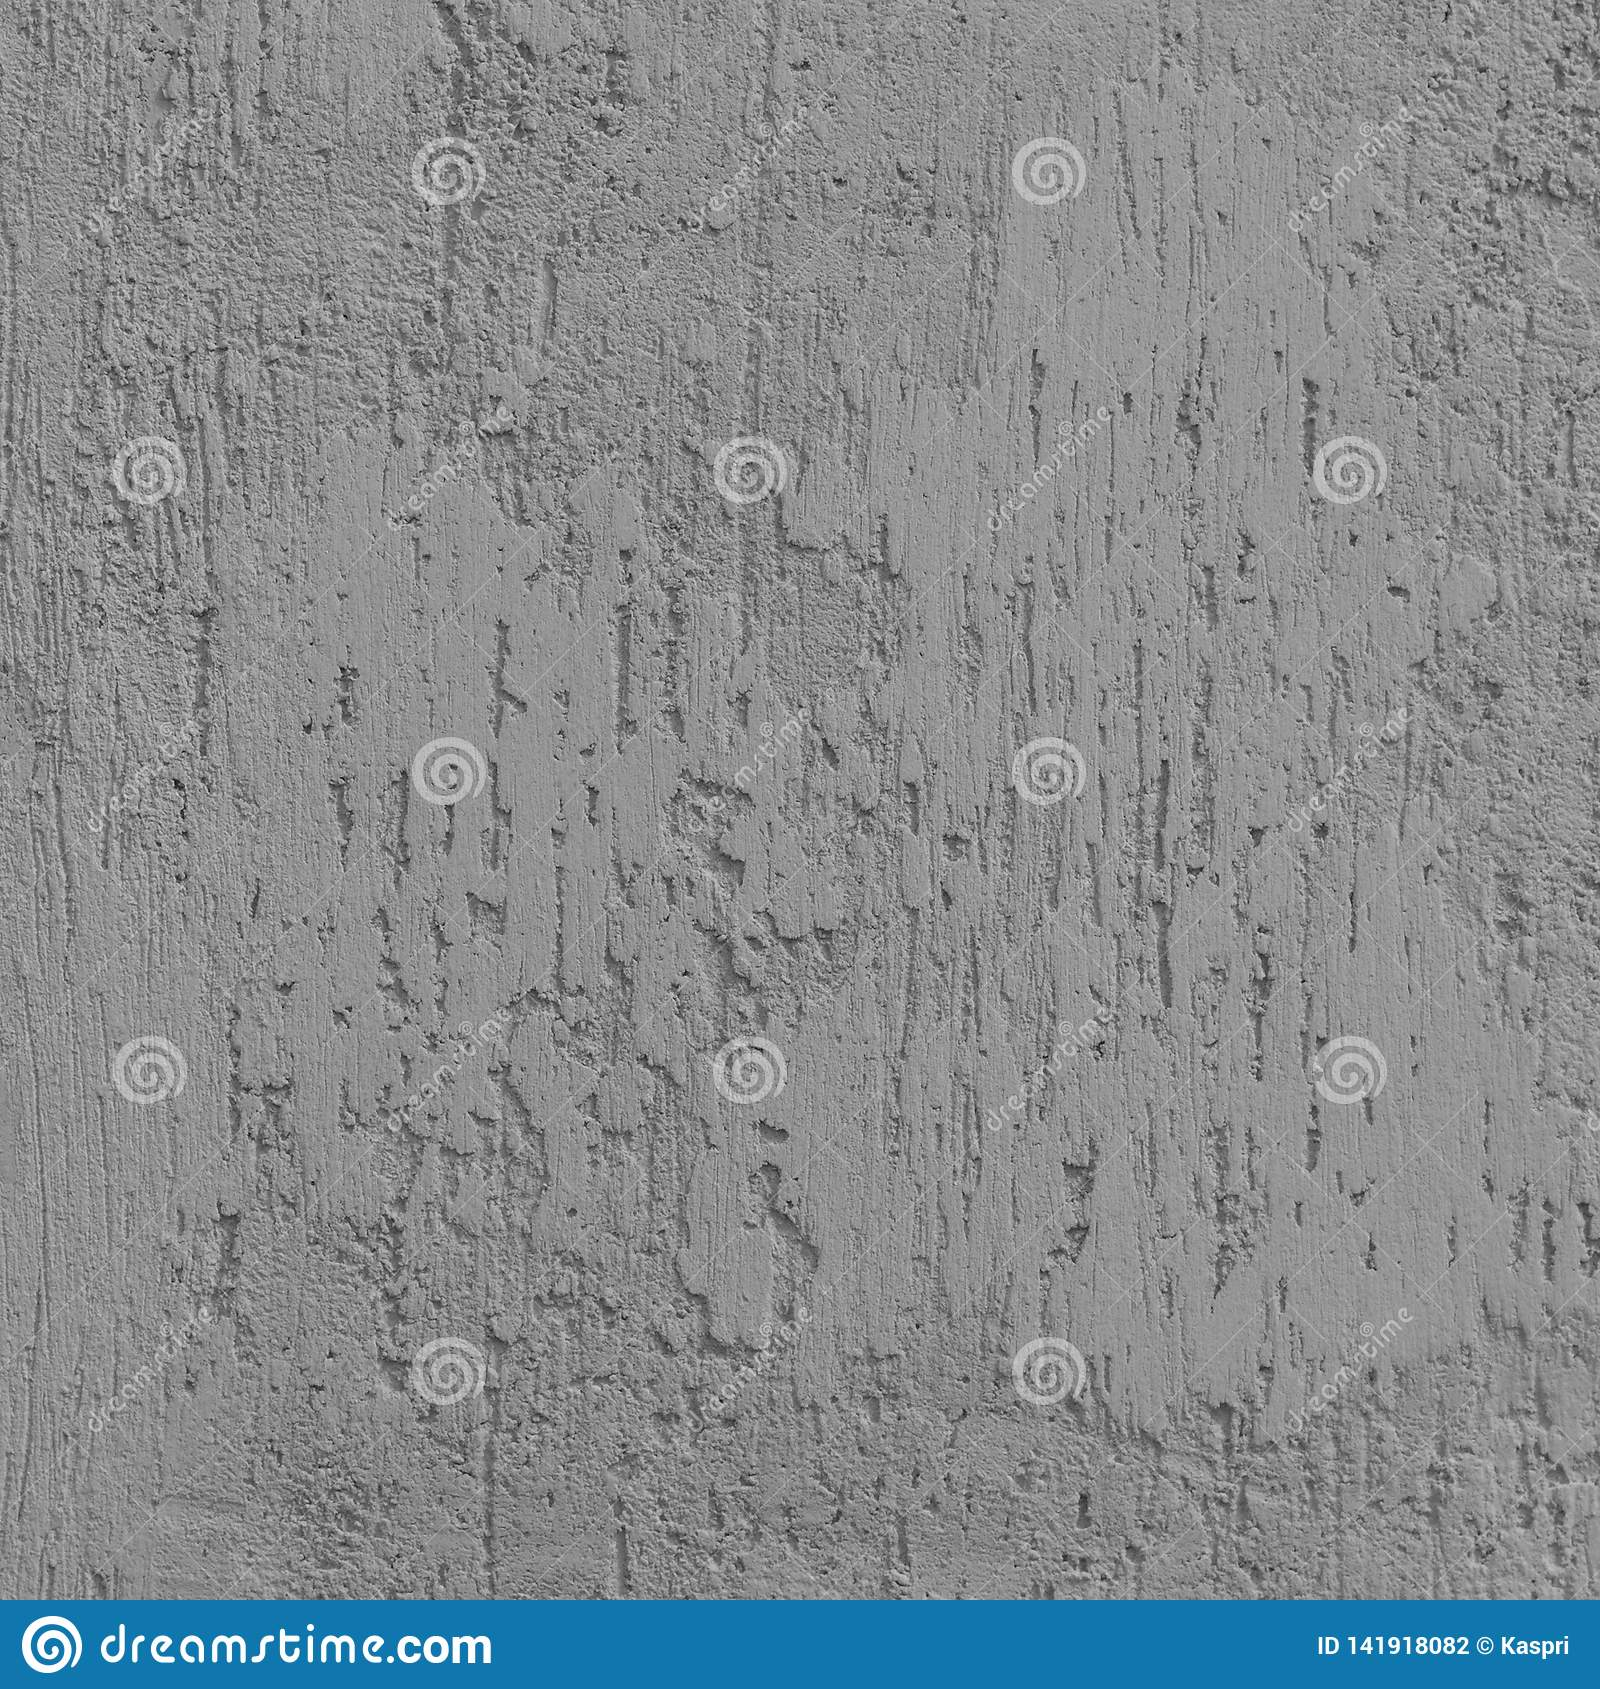 Struttura luminosa di Grey Grunge Plastered Wall Stucco, graffio naturale dettagliato Gray Coarse Rustic Textured Background Grun